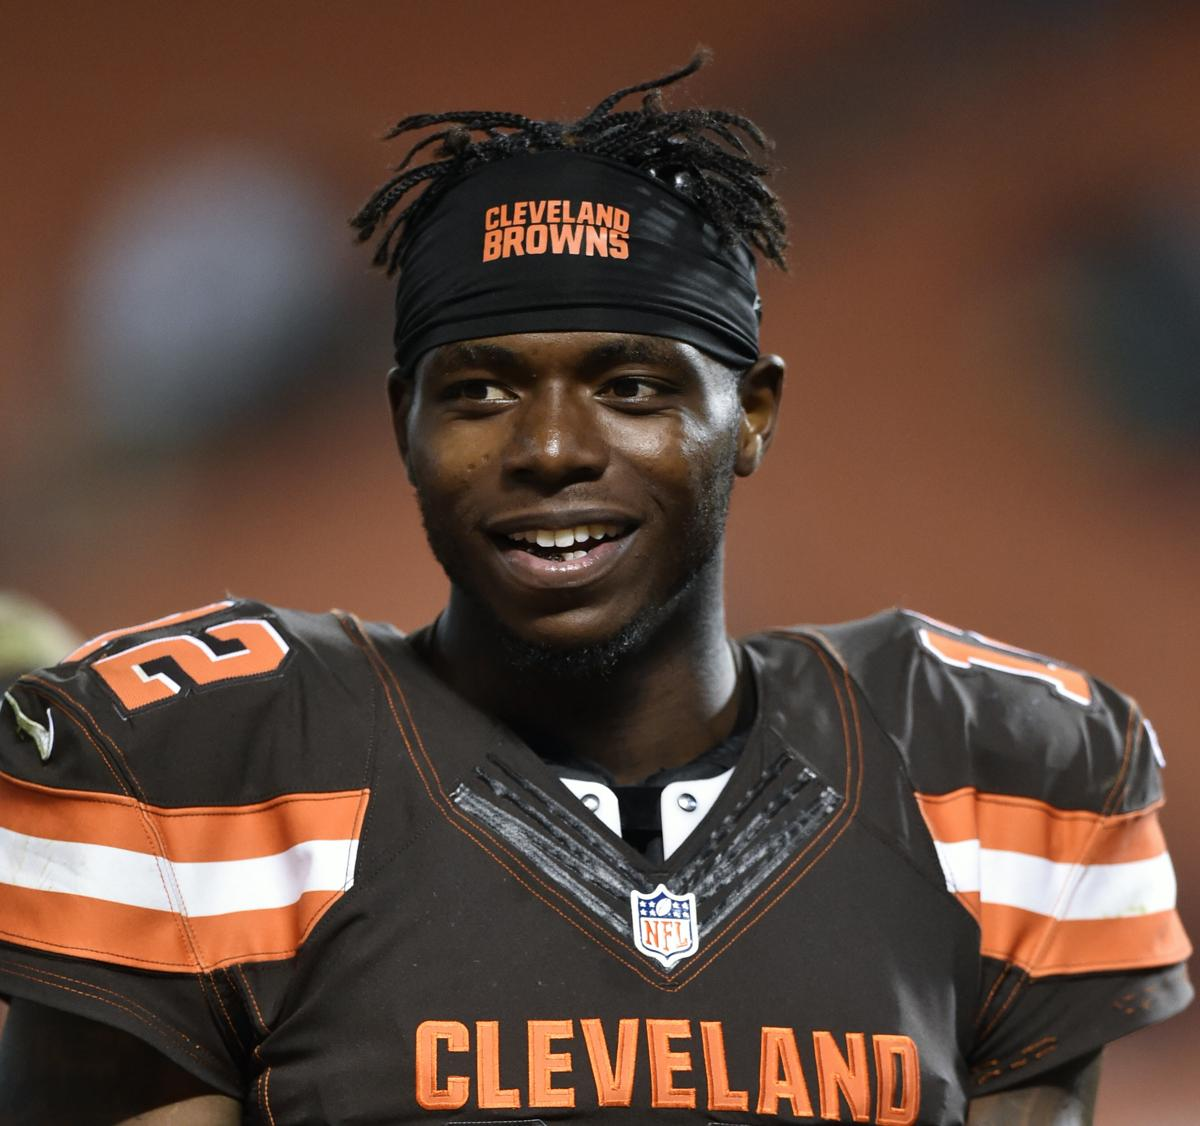 Cleveland Browns to cut ties with talented but troubled wide receiver Josh Gordon